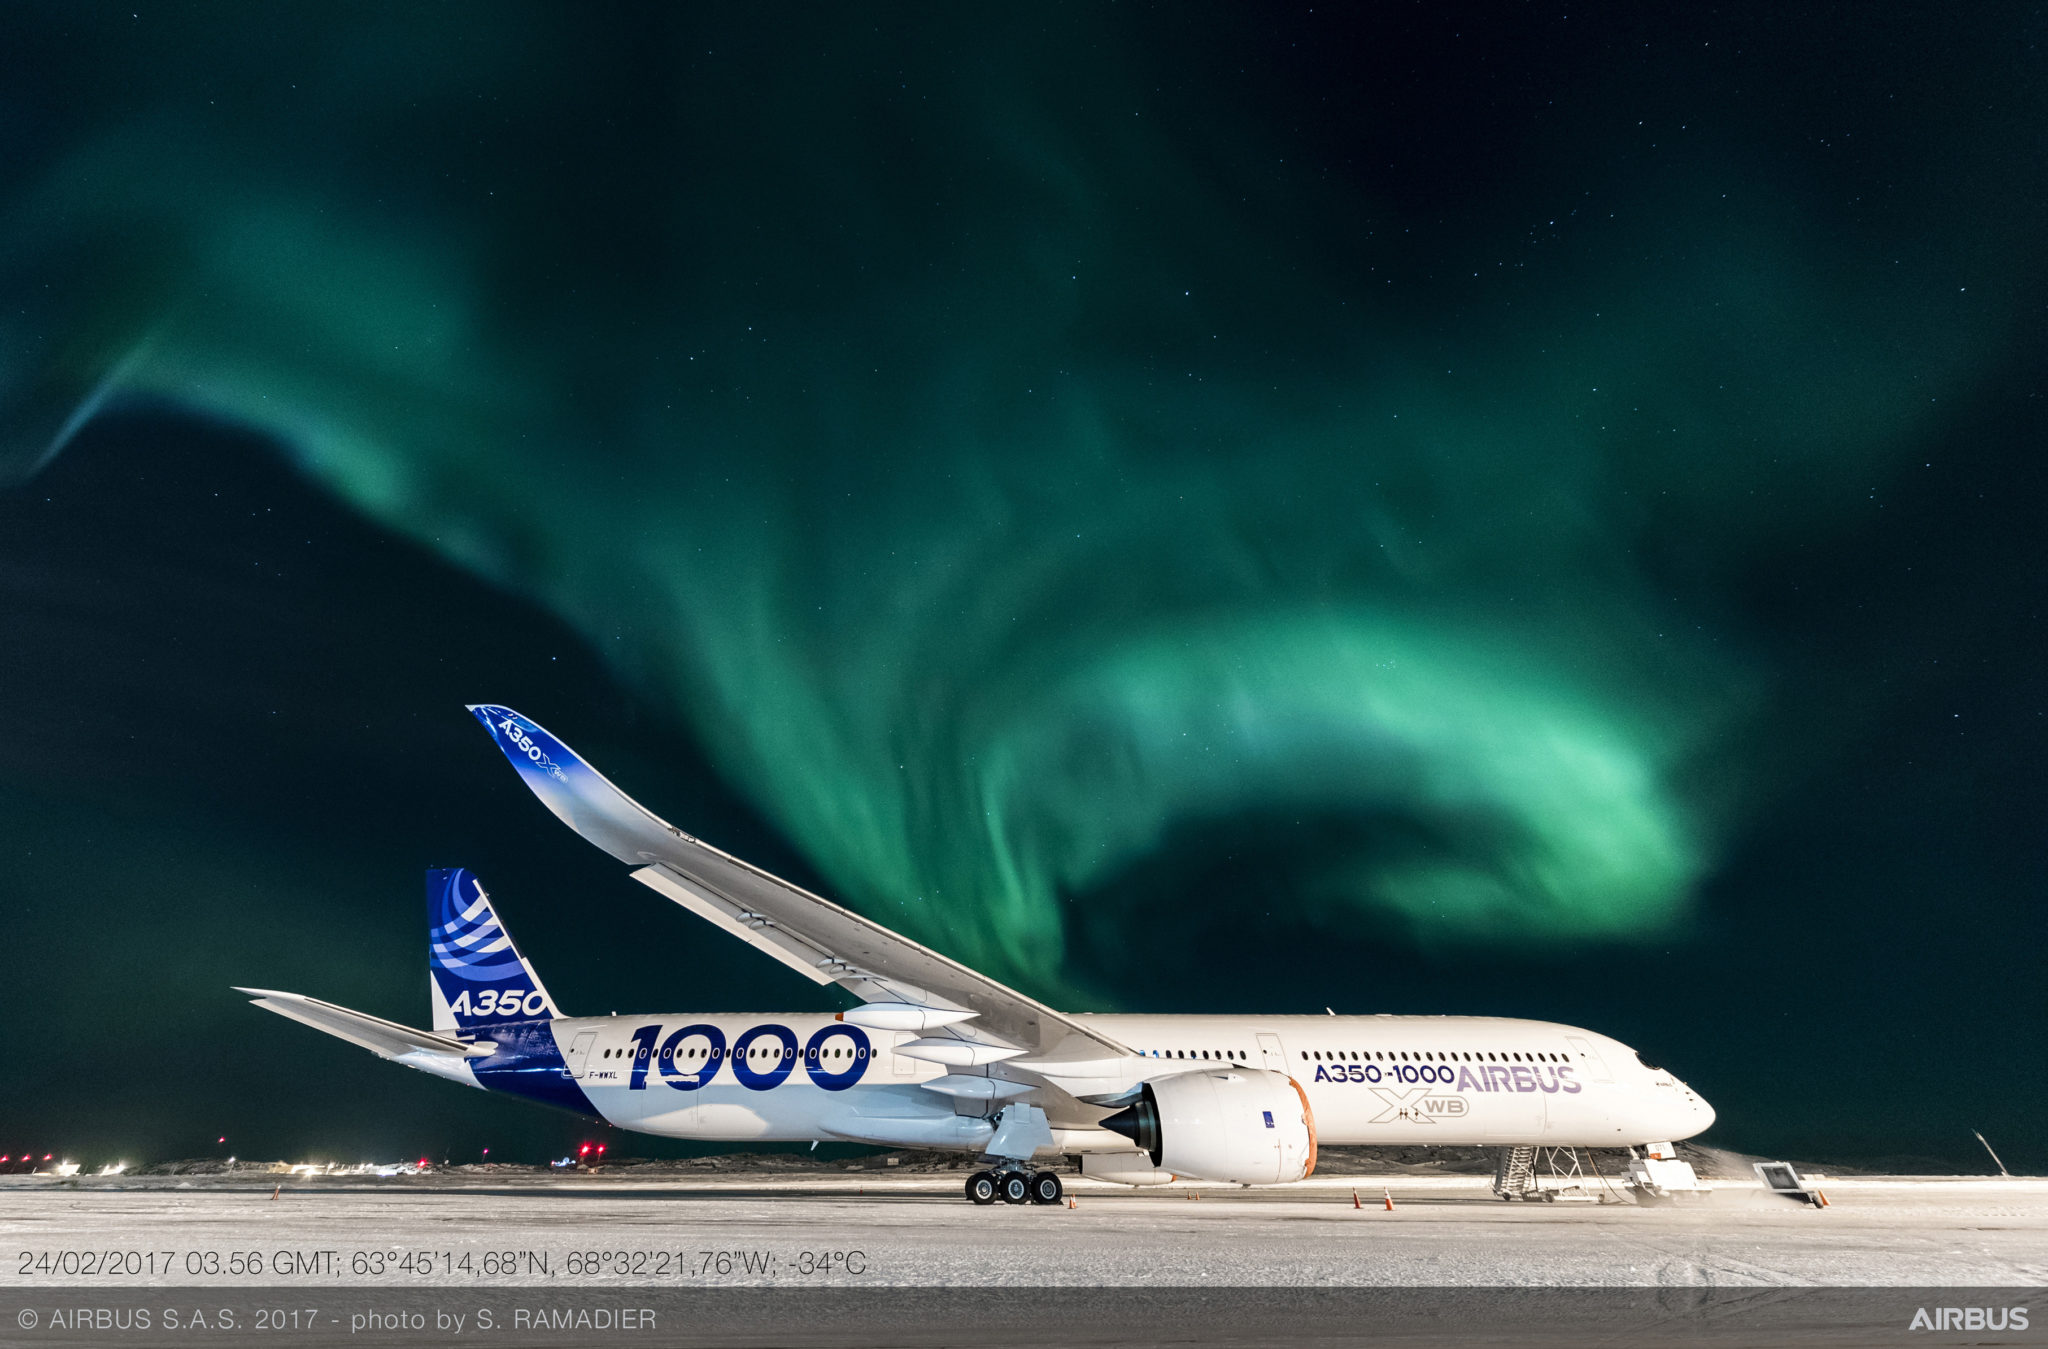 Airbus A350-1000 certified  How good is it? - Leeham News and Analysis